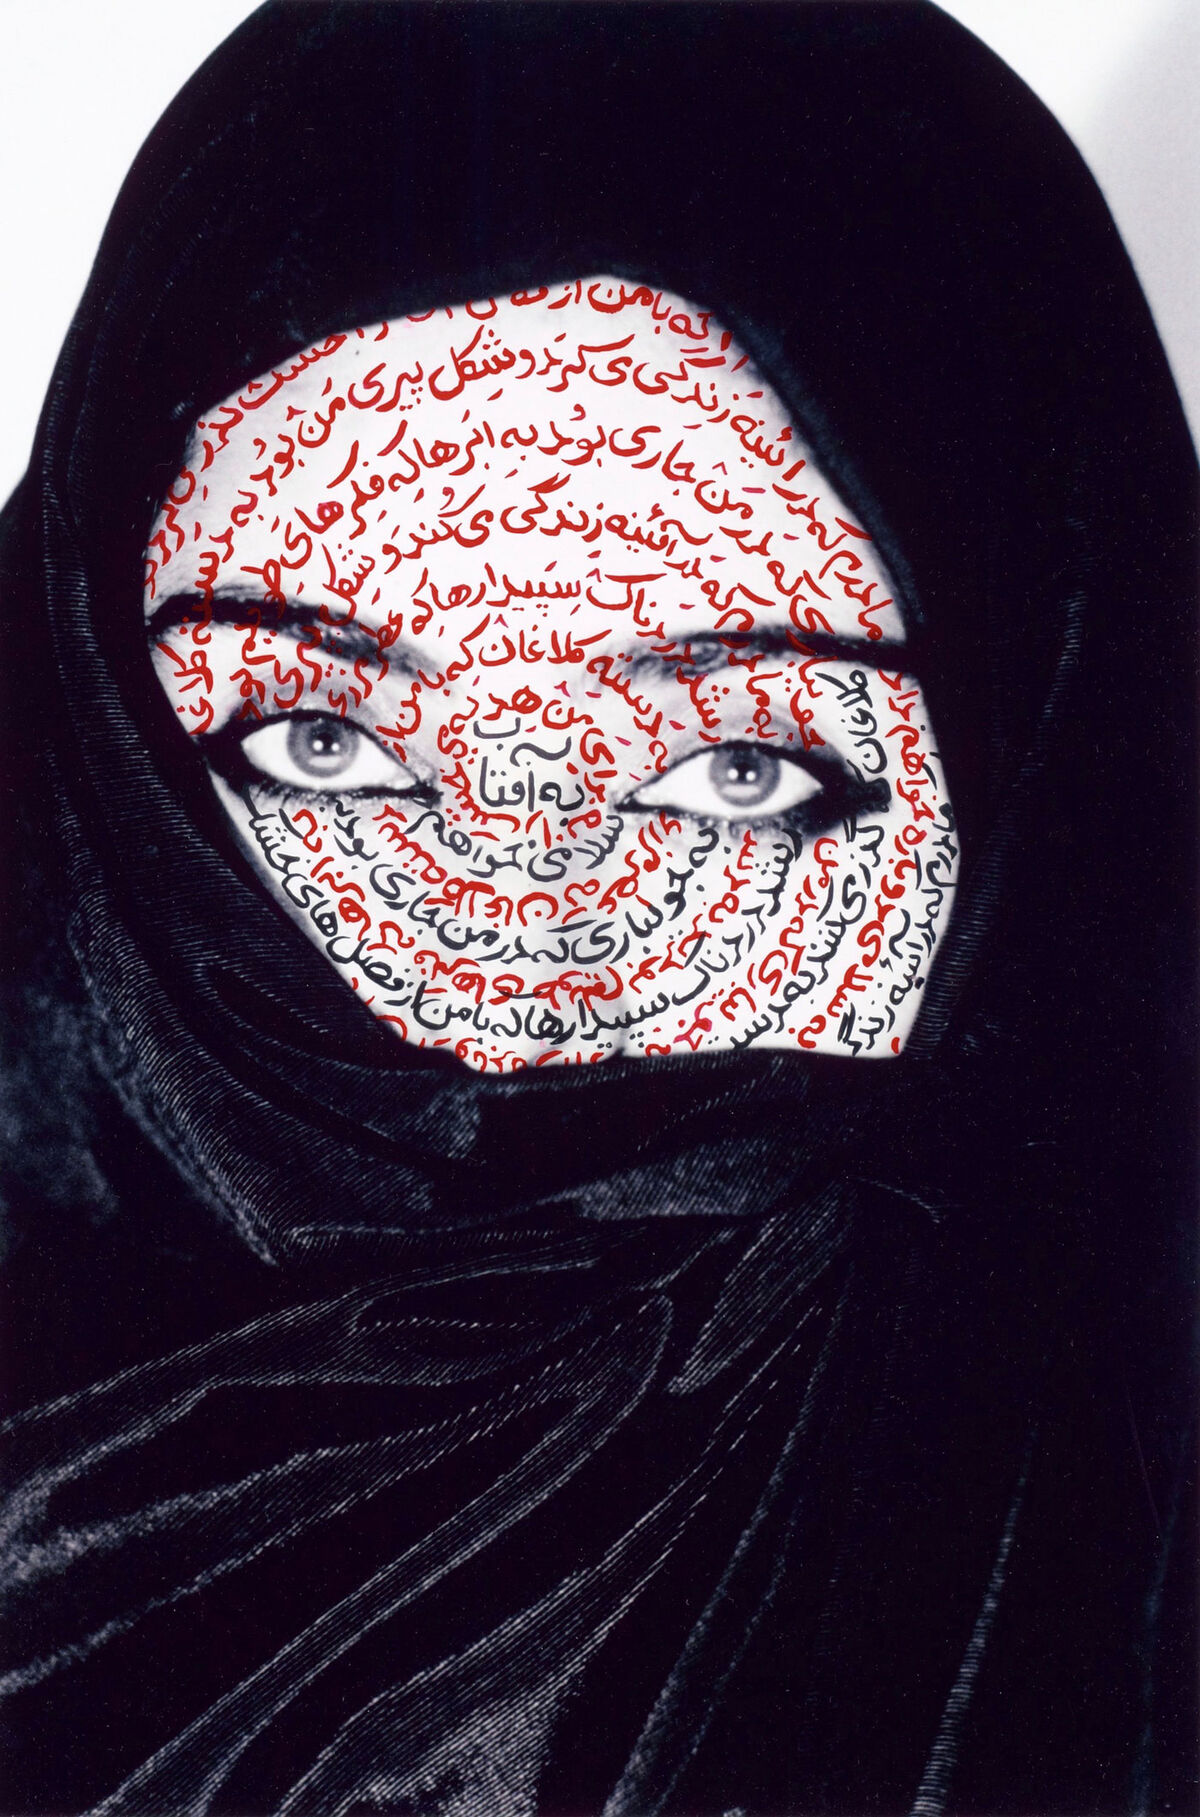 Shirin Neshat, I Am Its Secret, 1993. © Shirin Neshat. Photo by Plauto. Courtesy of the artist and Gladstone Gallery, New York and Brussels.